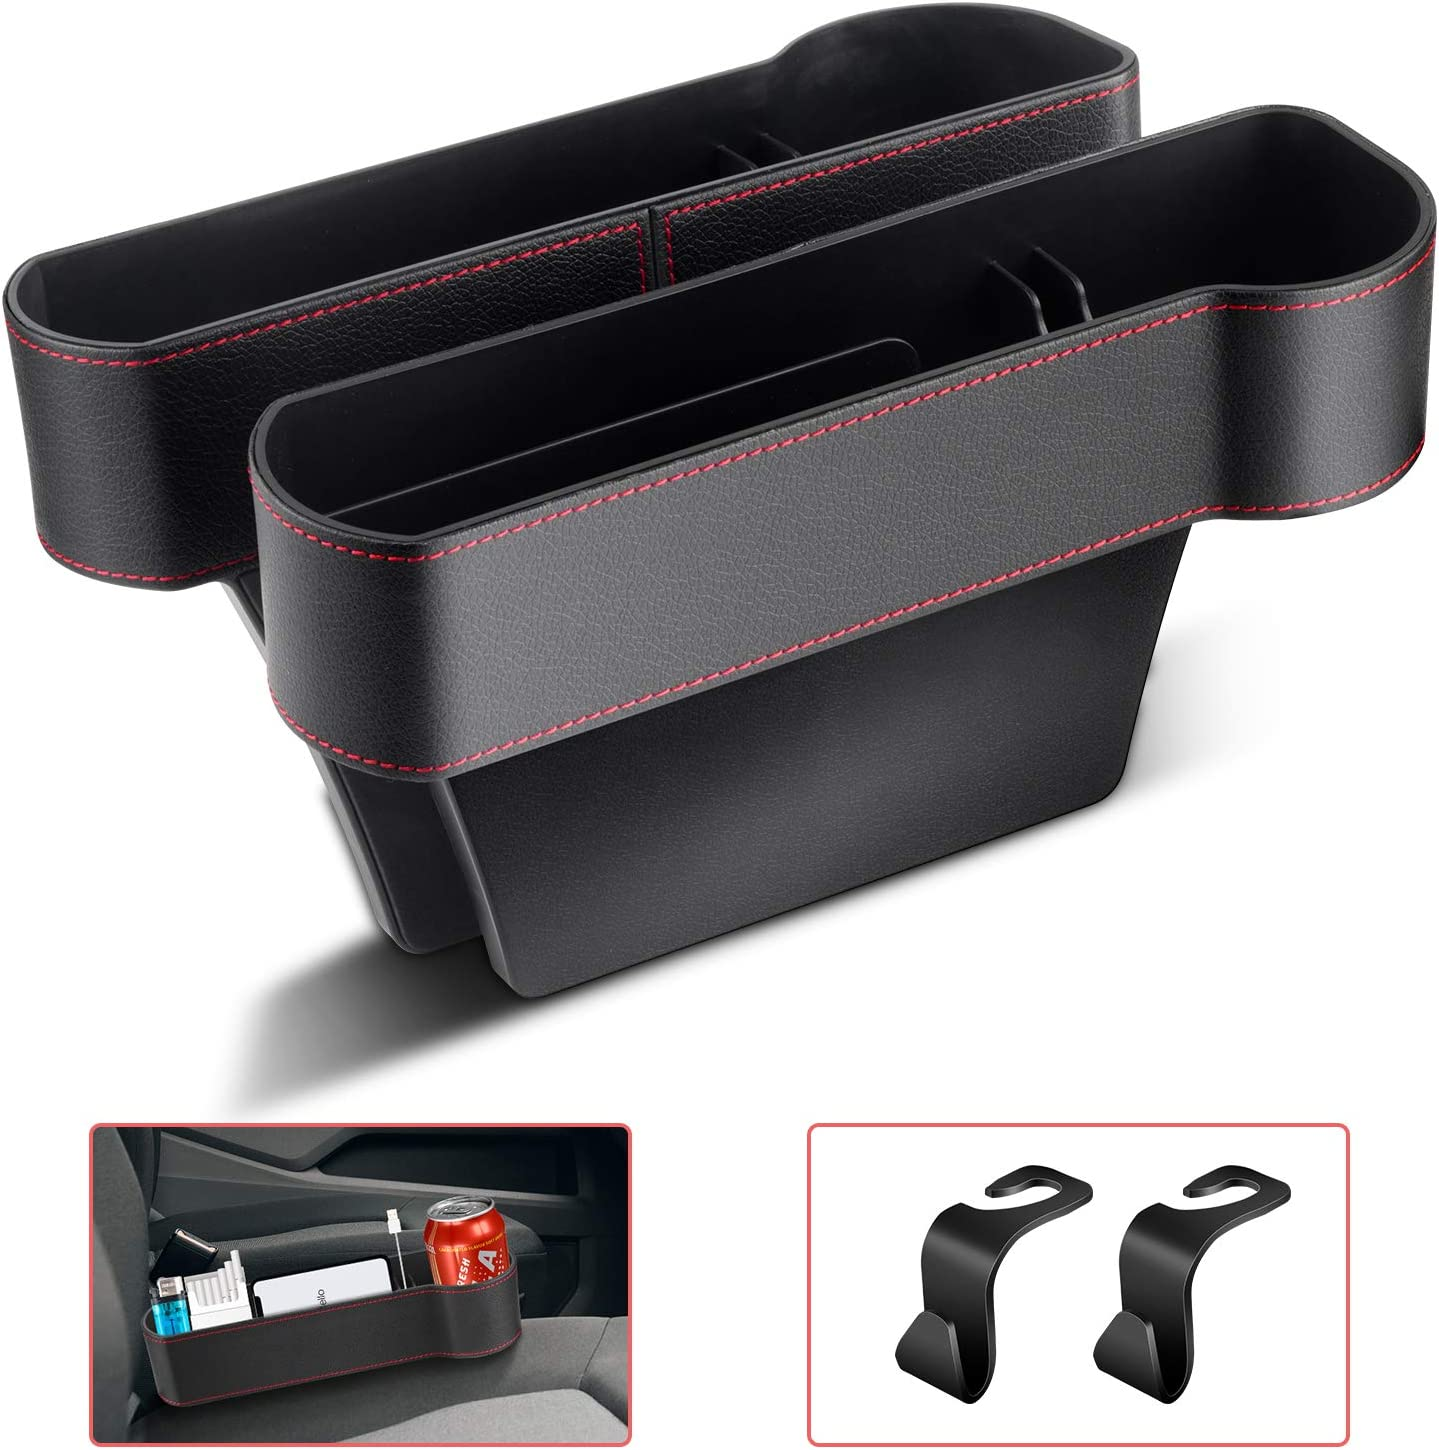 Car Seat Gap Filler, PU Leather Car Organizer Front Seat Filler with Cup Holder, Console Side Pocket for Wallet, Cellphones, Keys, Cards, Coins, Drink Cups, etc 2 Pack(black)